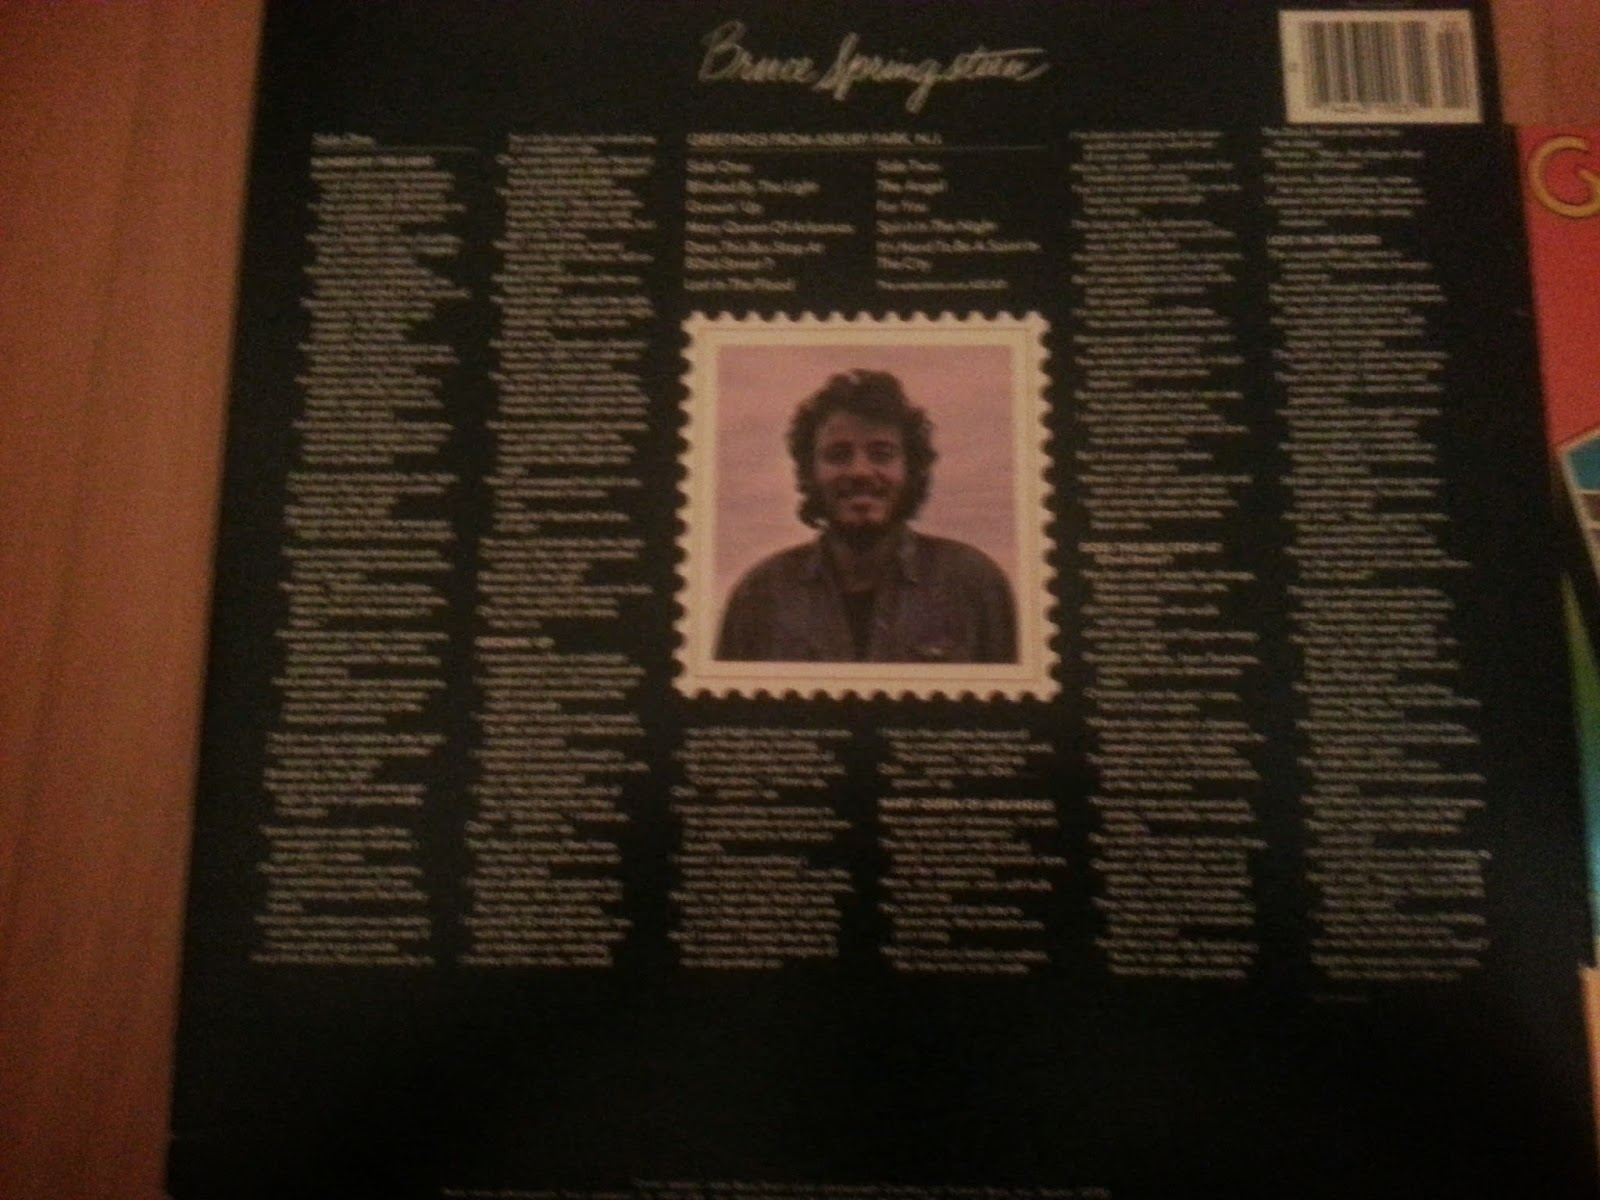 Legends of springsteen counting on a package deal part 1 greetings from asbury park springsteens debut album here weve got a standard looking record while the front features very little to identify this m4hsunfo Gallery